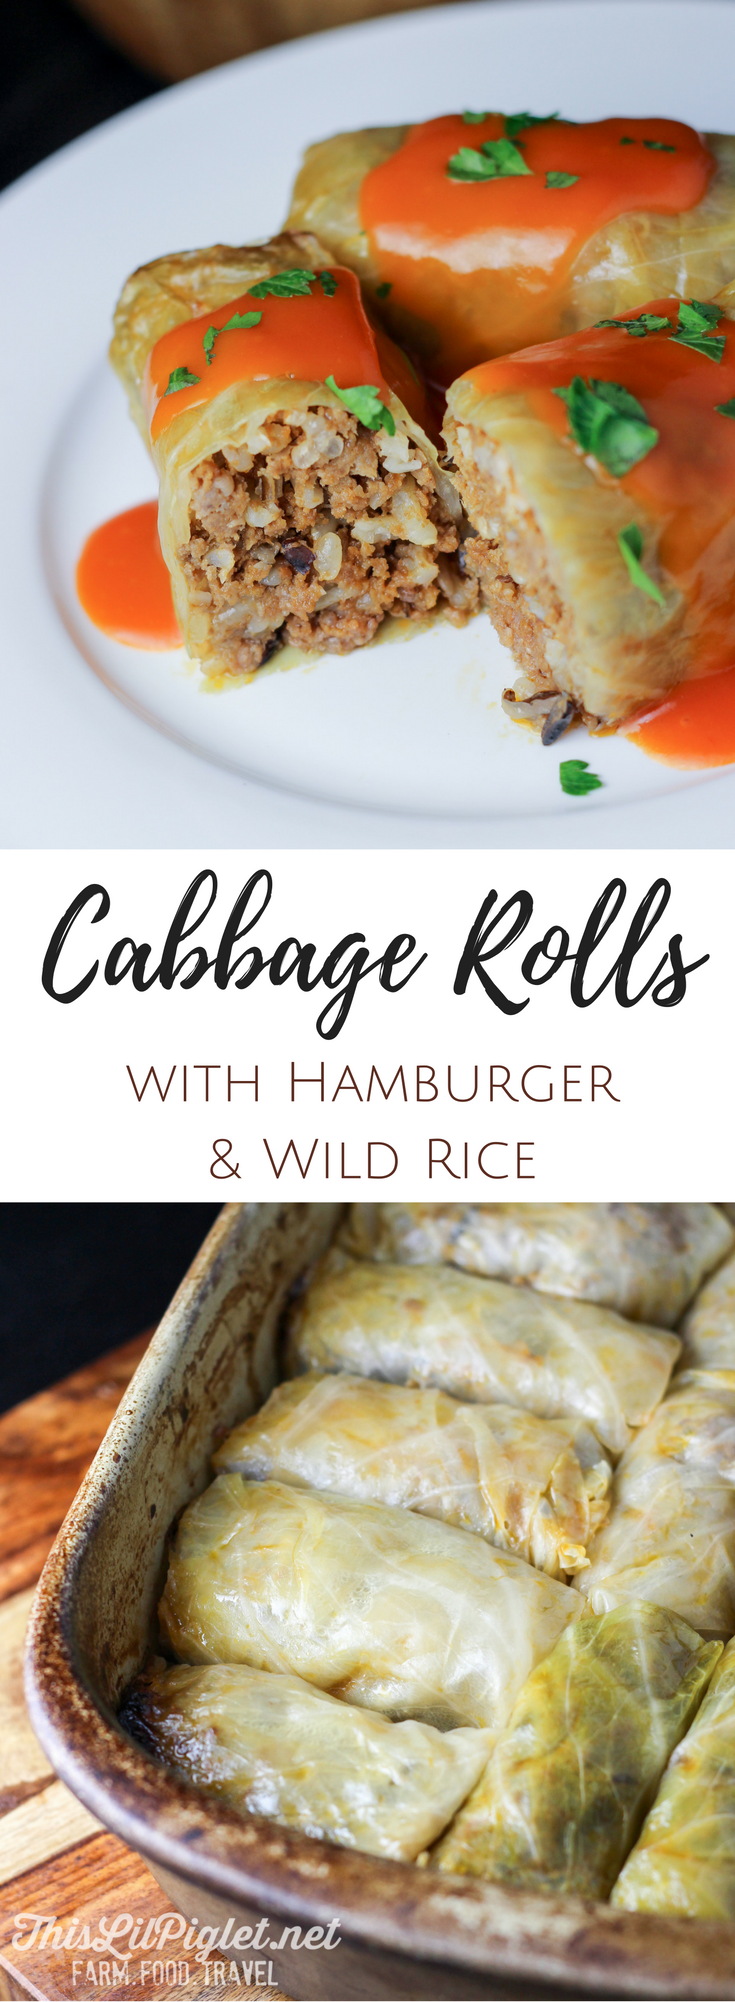 Cabbage Rolls With Hamburger and Wild Rice in Tomato Sauce PIN // thislilpiglet.net